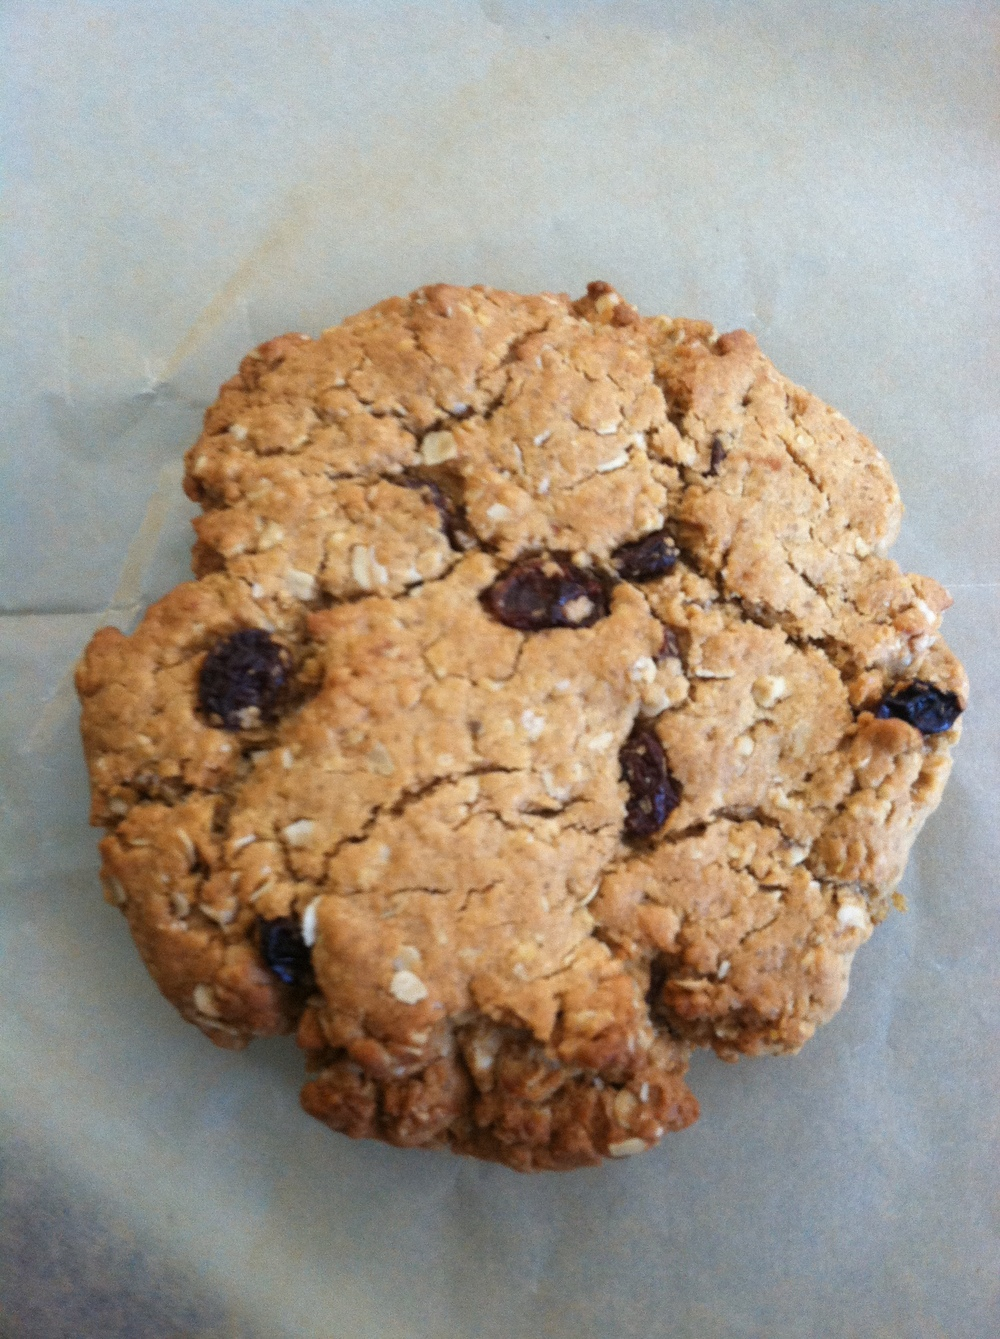 Breakfast Cookie from   Biltmore Coffee Roasters   using 100% Carolina Ground flour.